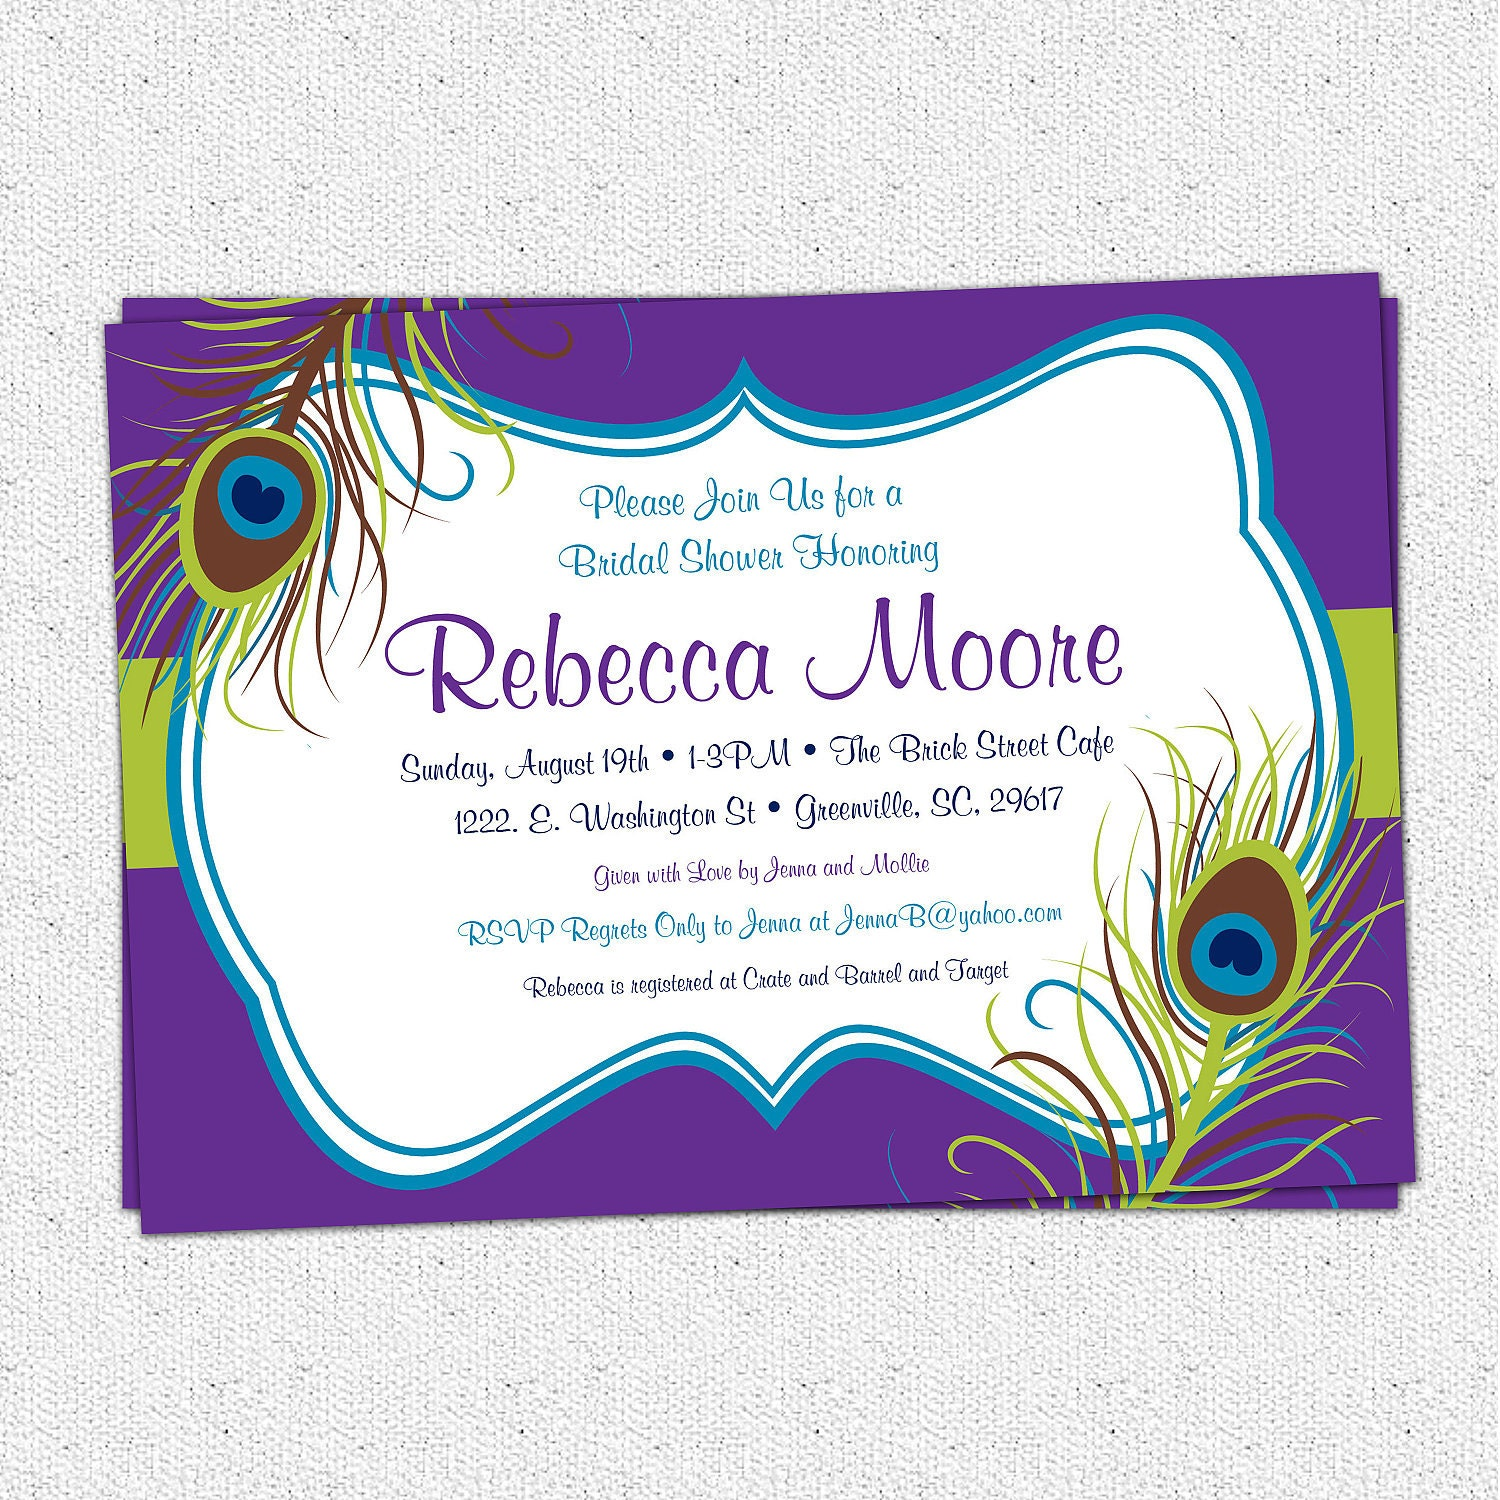 Design Your Own Bridal Shower Invitations for beautiful invitations example